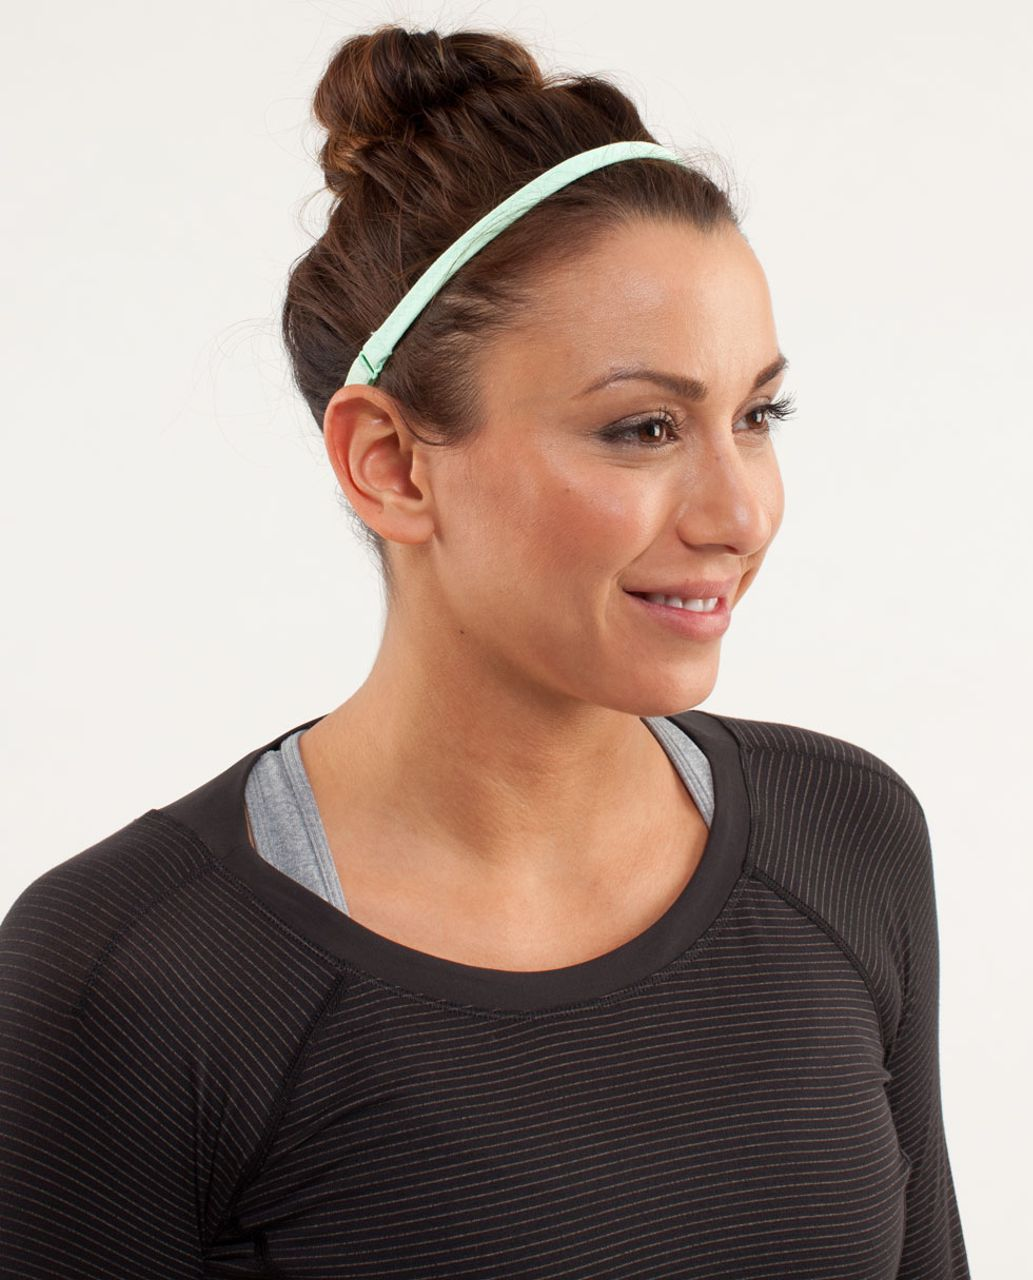 Lululemon Strappy Headband - Fresh Teal